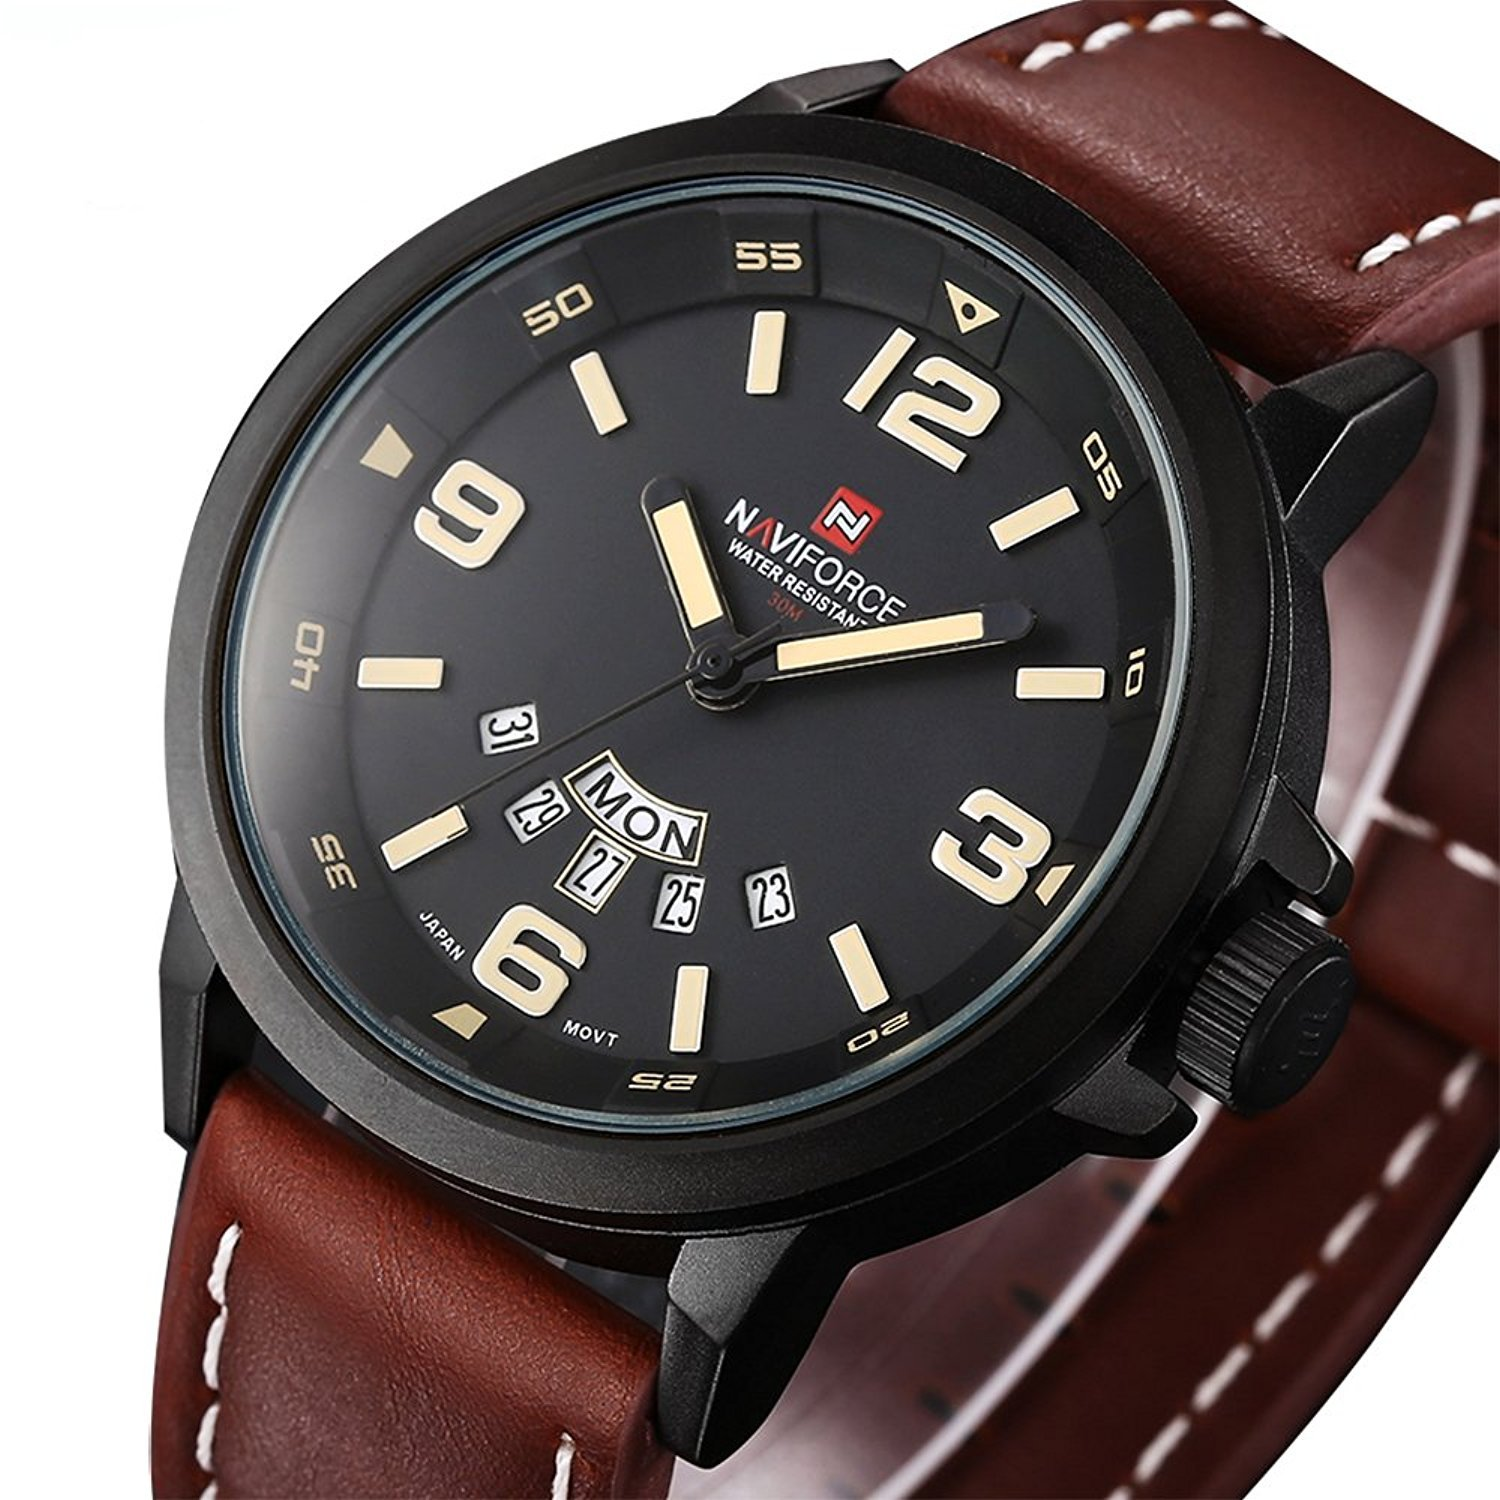 s in date number buy quartz low strap dp at prices casual auto amazon wrist brown india large men watch waterproof watches leather with band business online